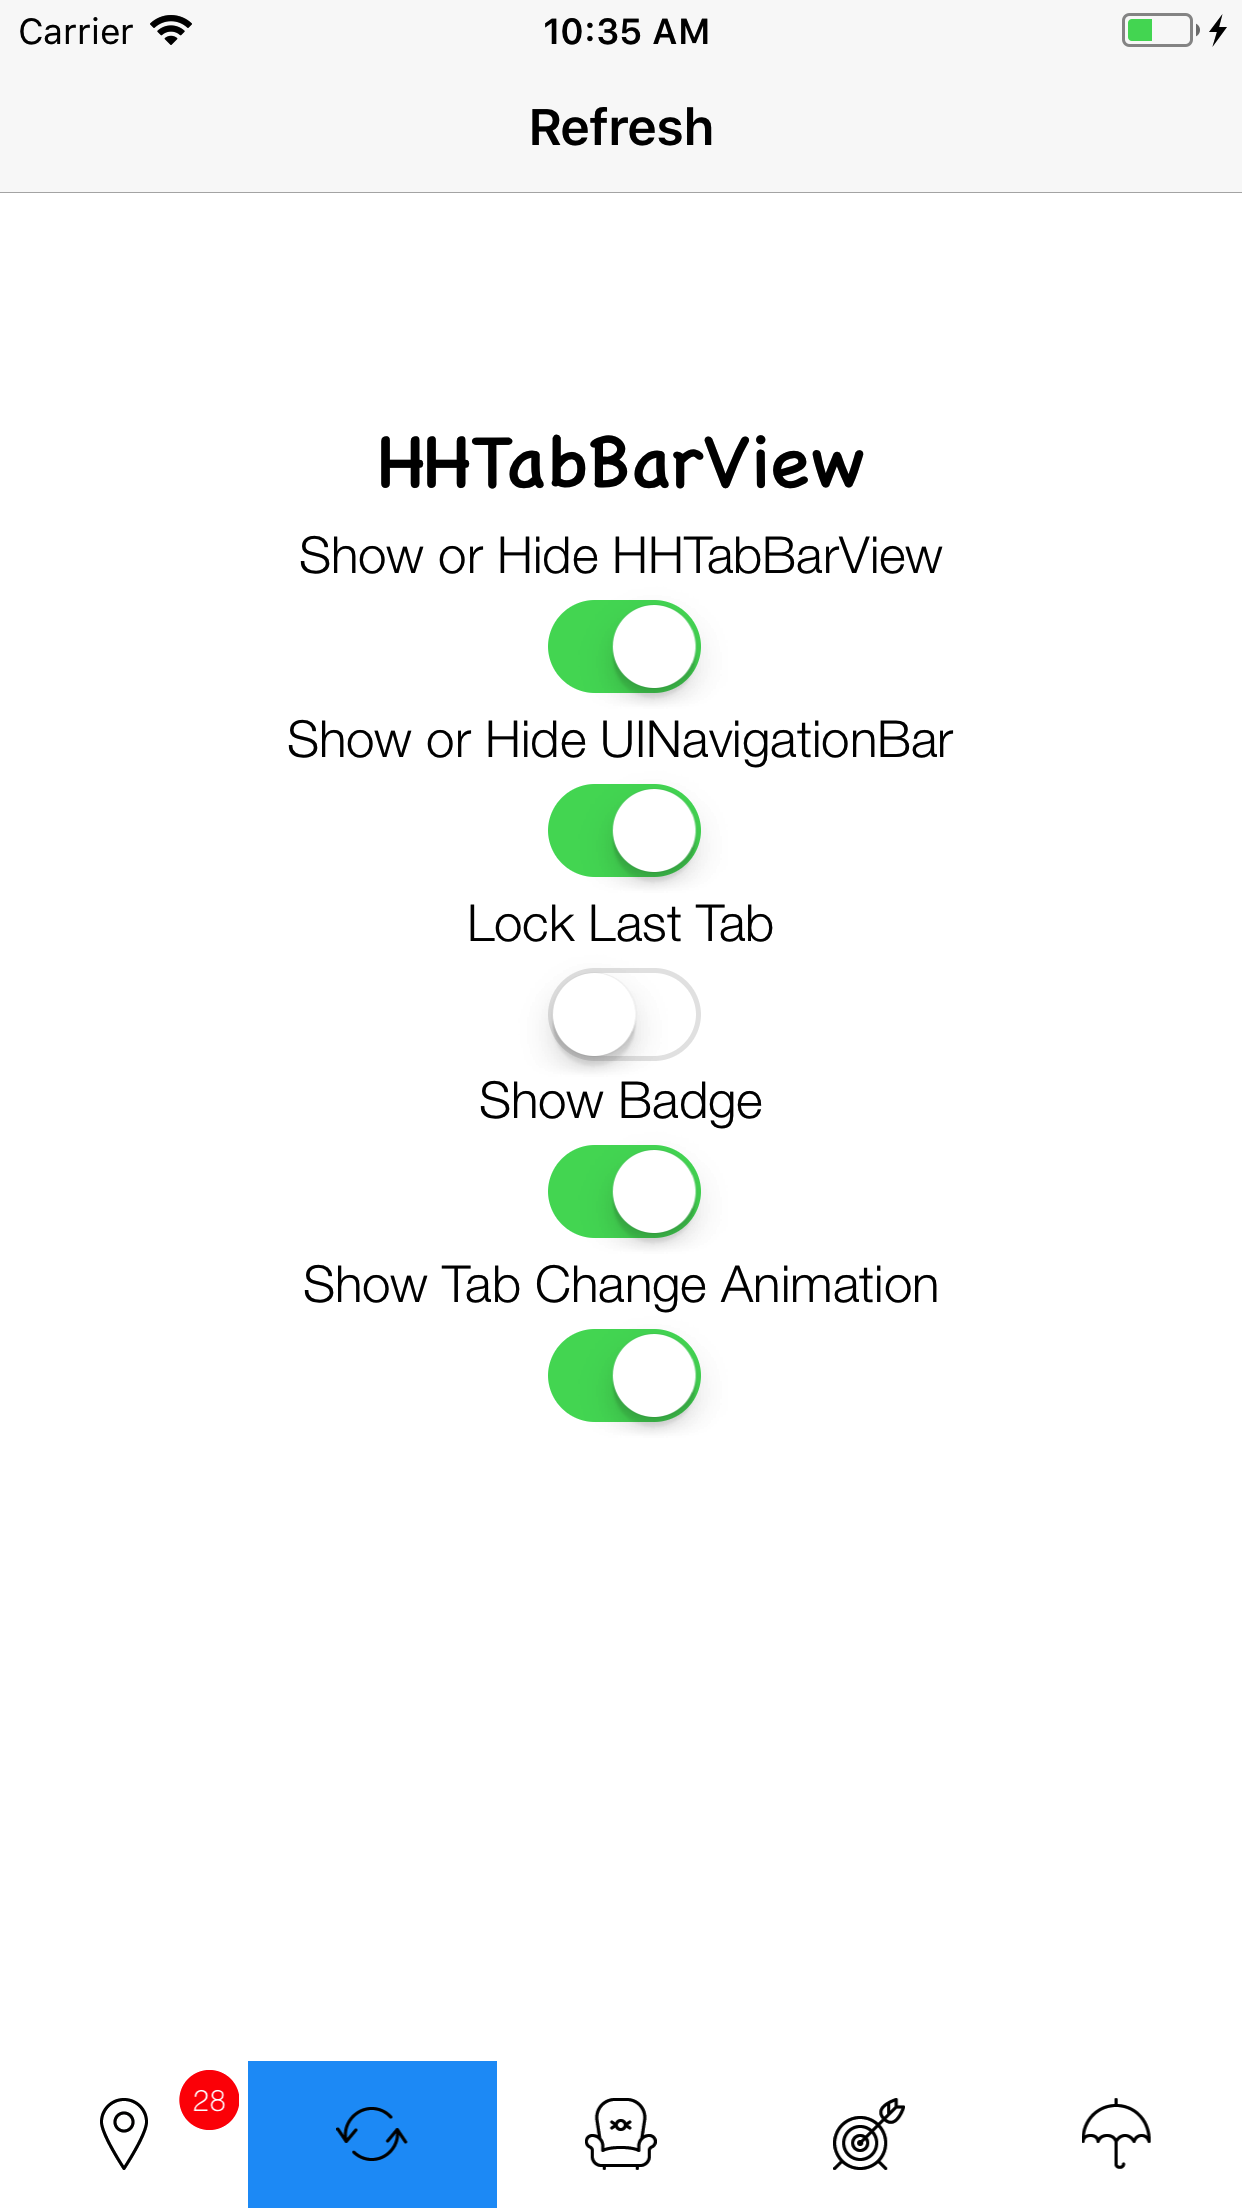 HHTabBarView screenshot